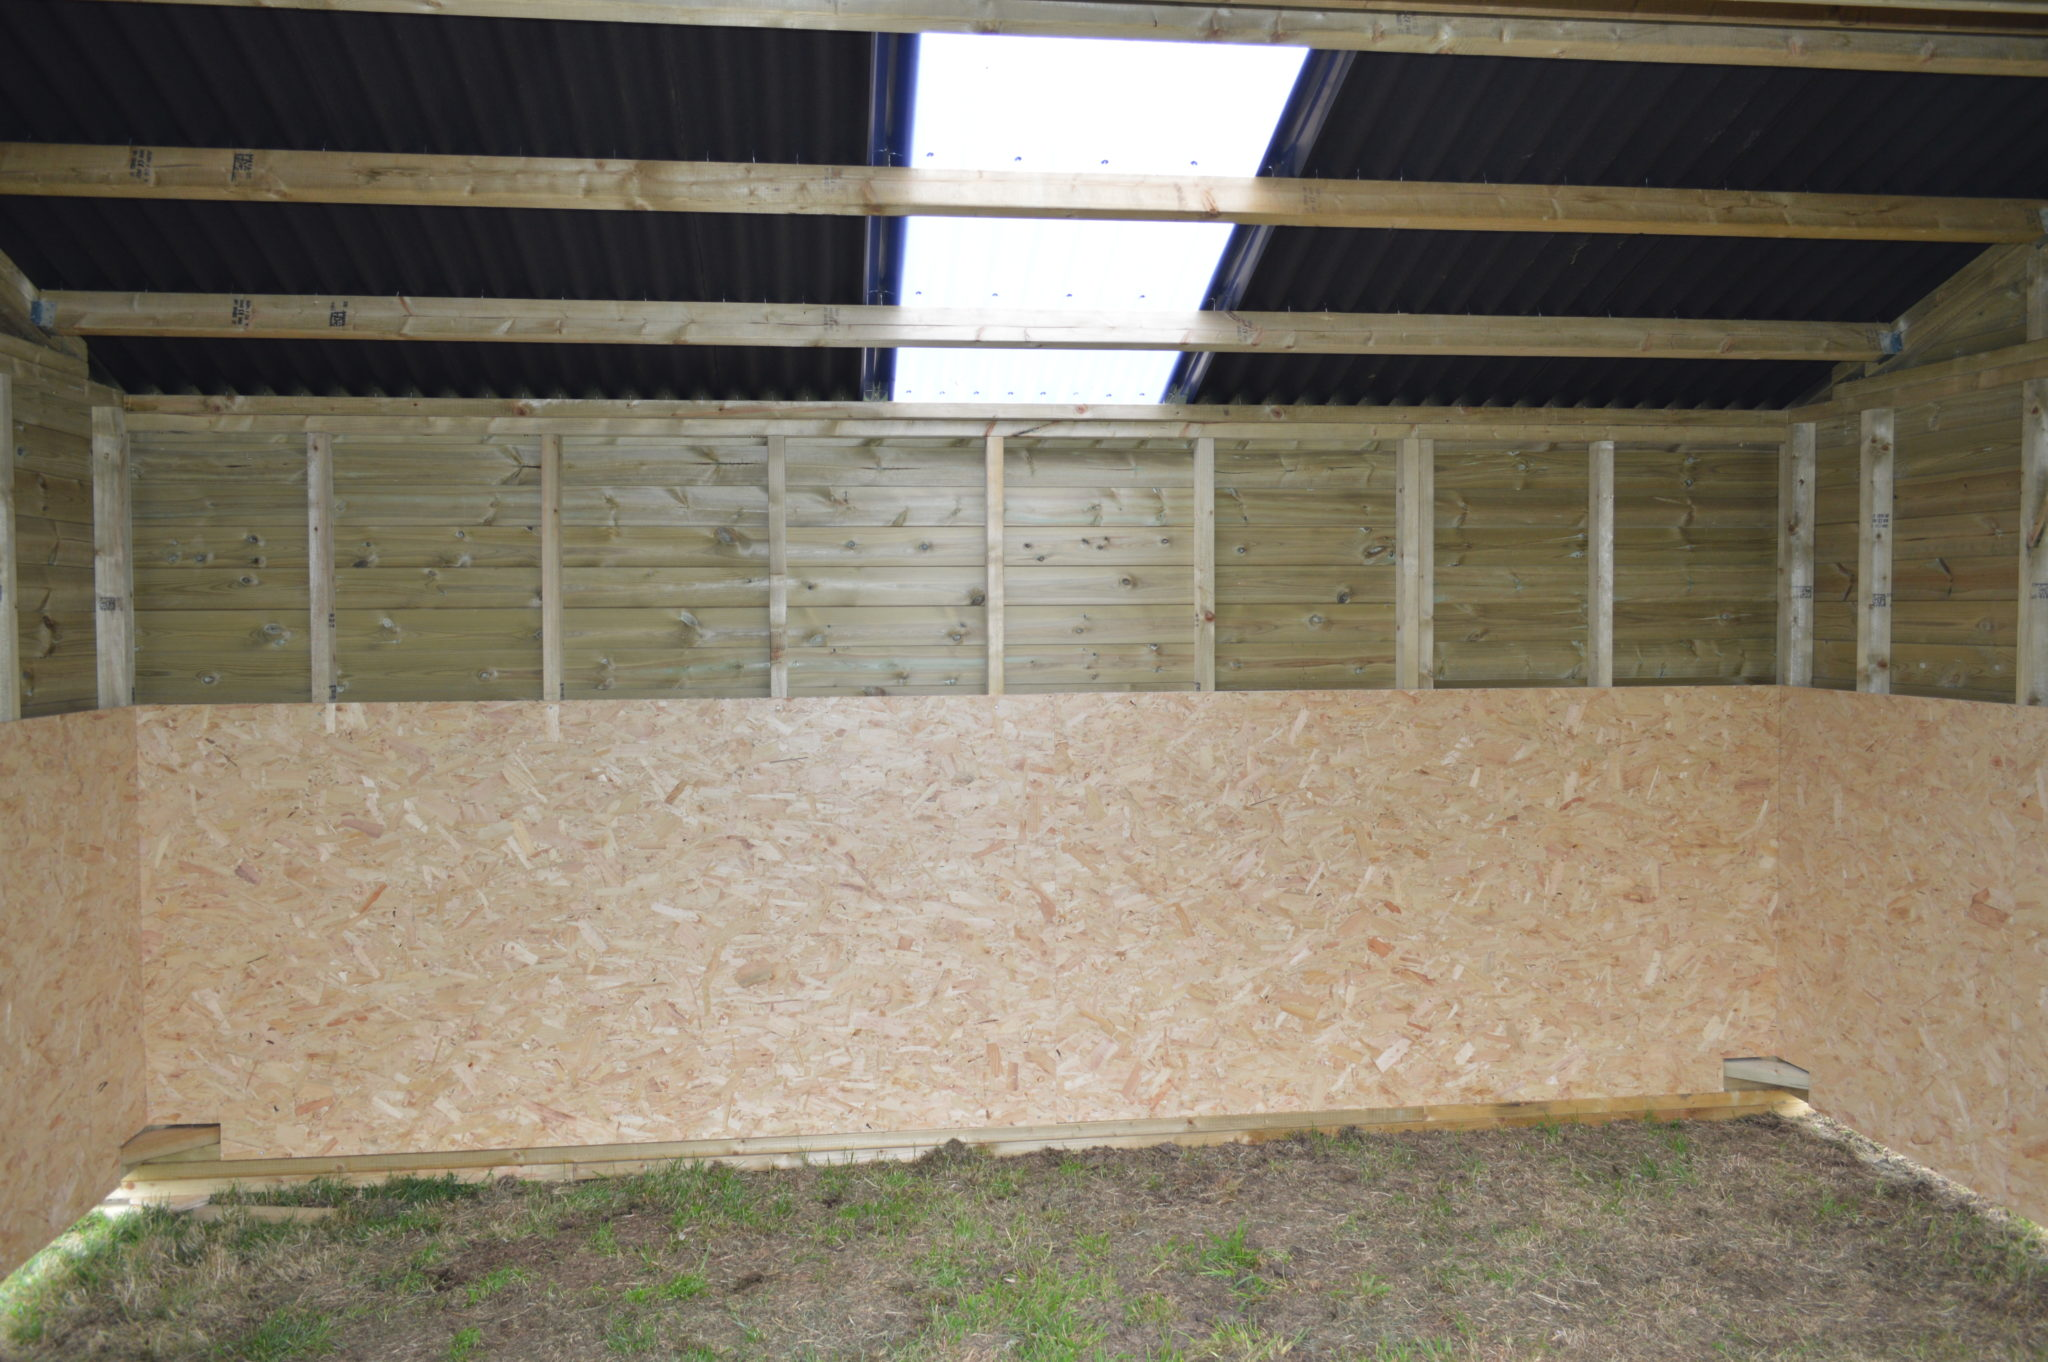 Internal view of 12x16 Mobile Field Shelter